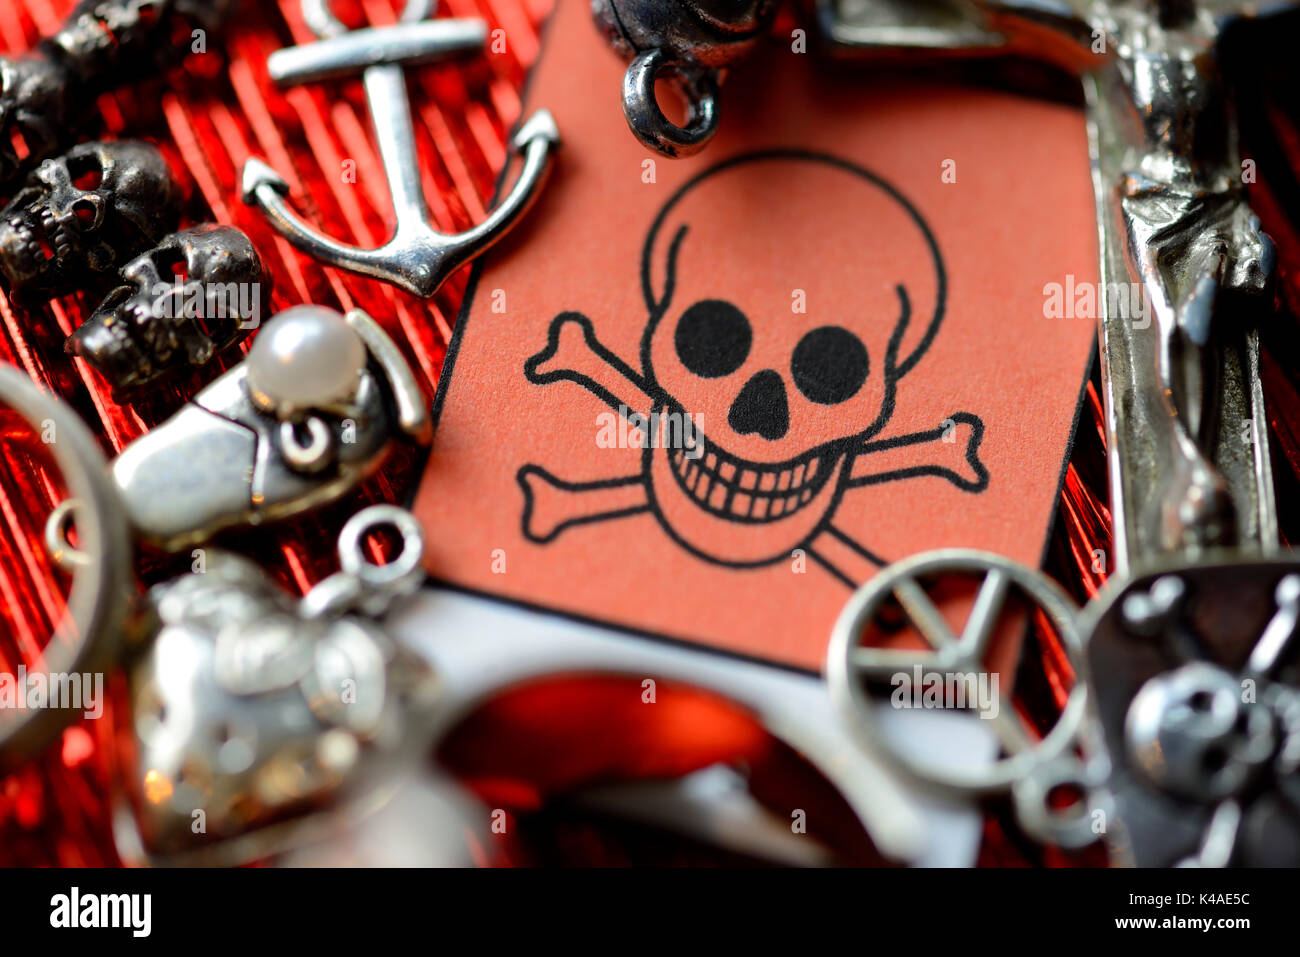 Costume Jewelry And Warning Sign, Toxic Substances In Cheap Jewelry - Stock Image